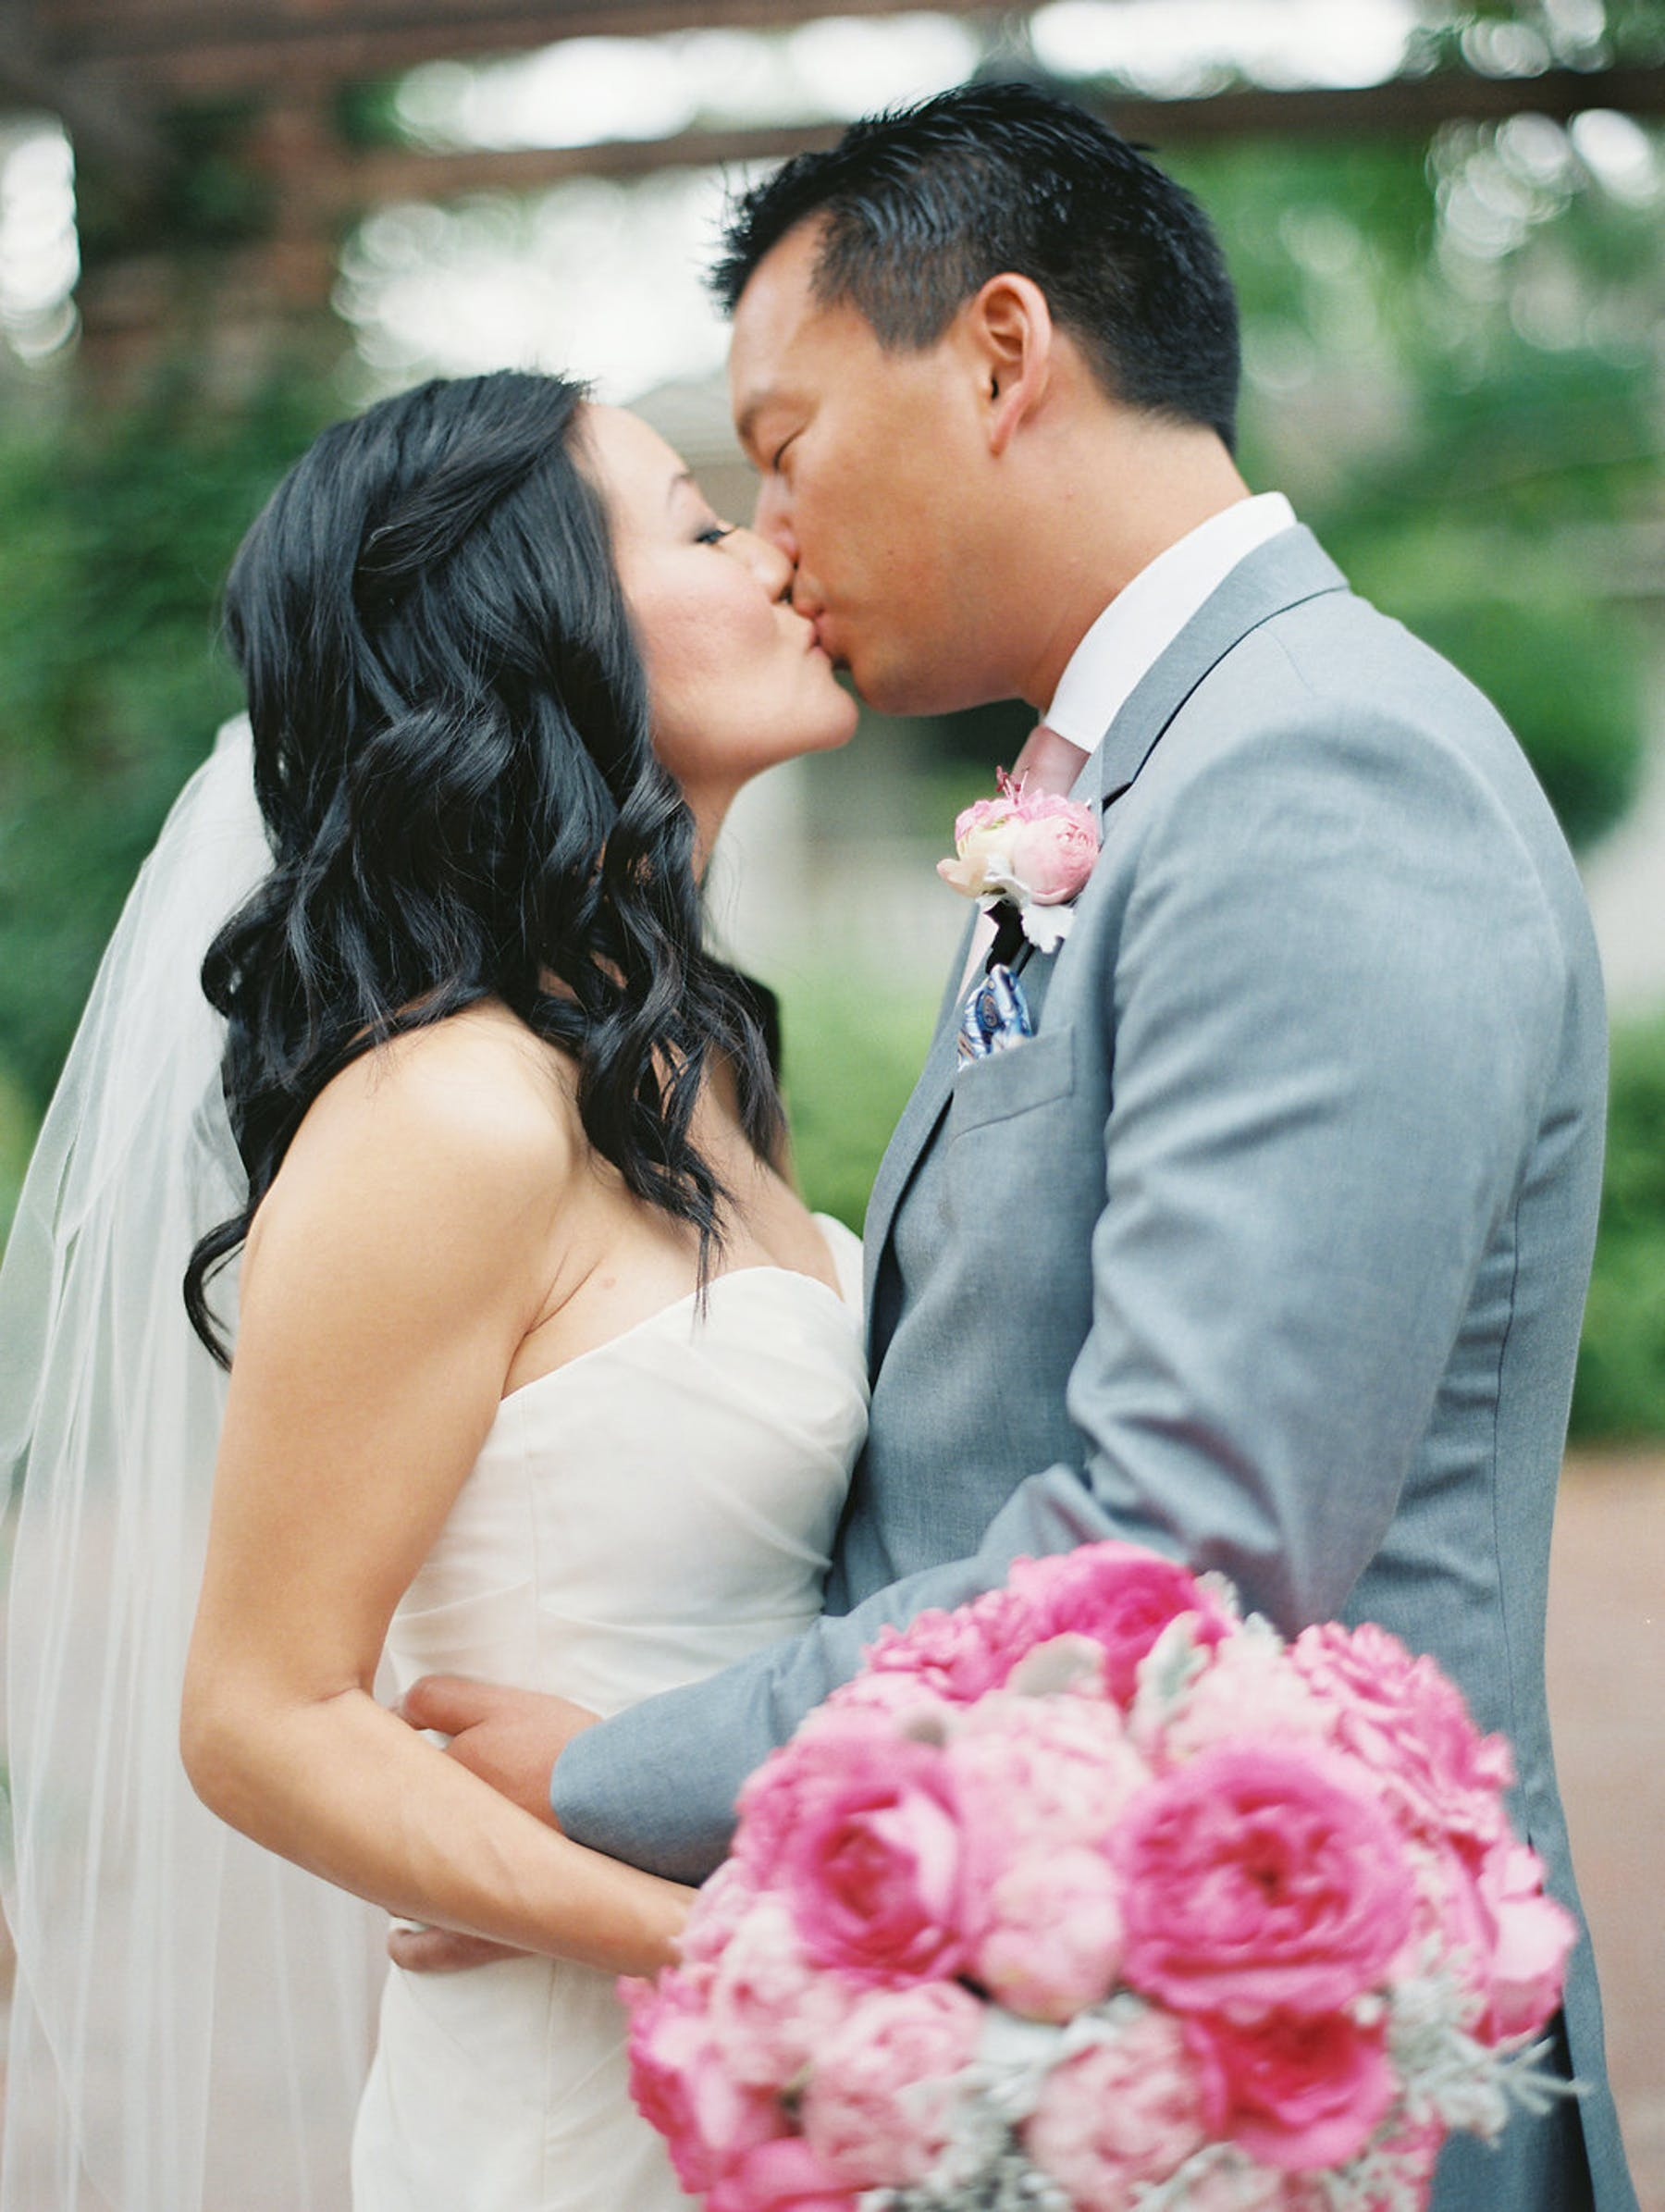 www.santabarbarawedding.com | El Encanto | Coco Rose Design | This Modern Romance | Bride and Groom